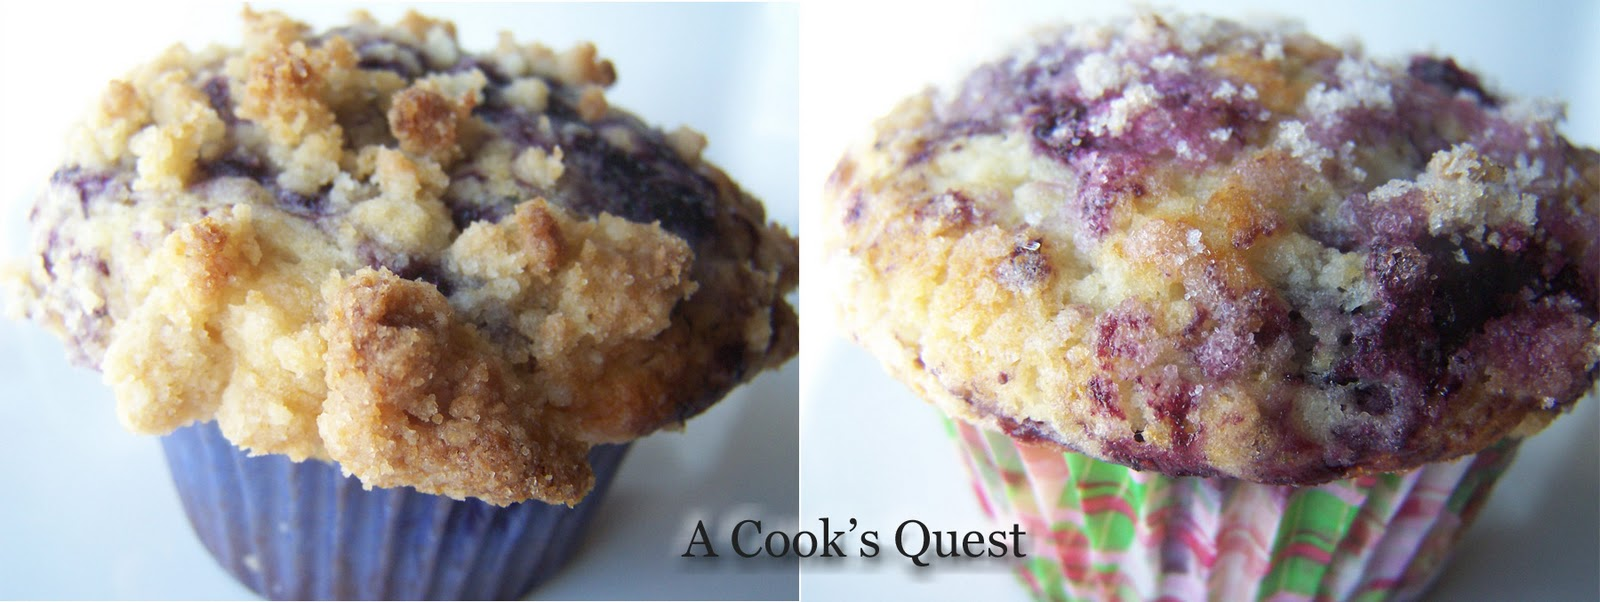 Cook's Quest: The Best Ever Blueberry Muffins